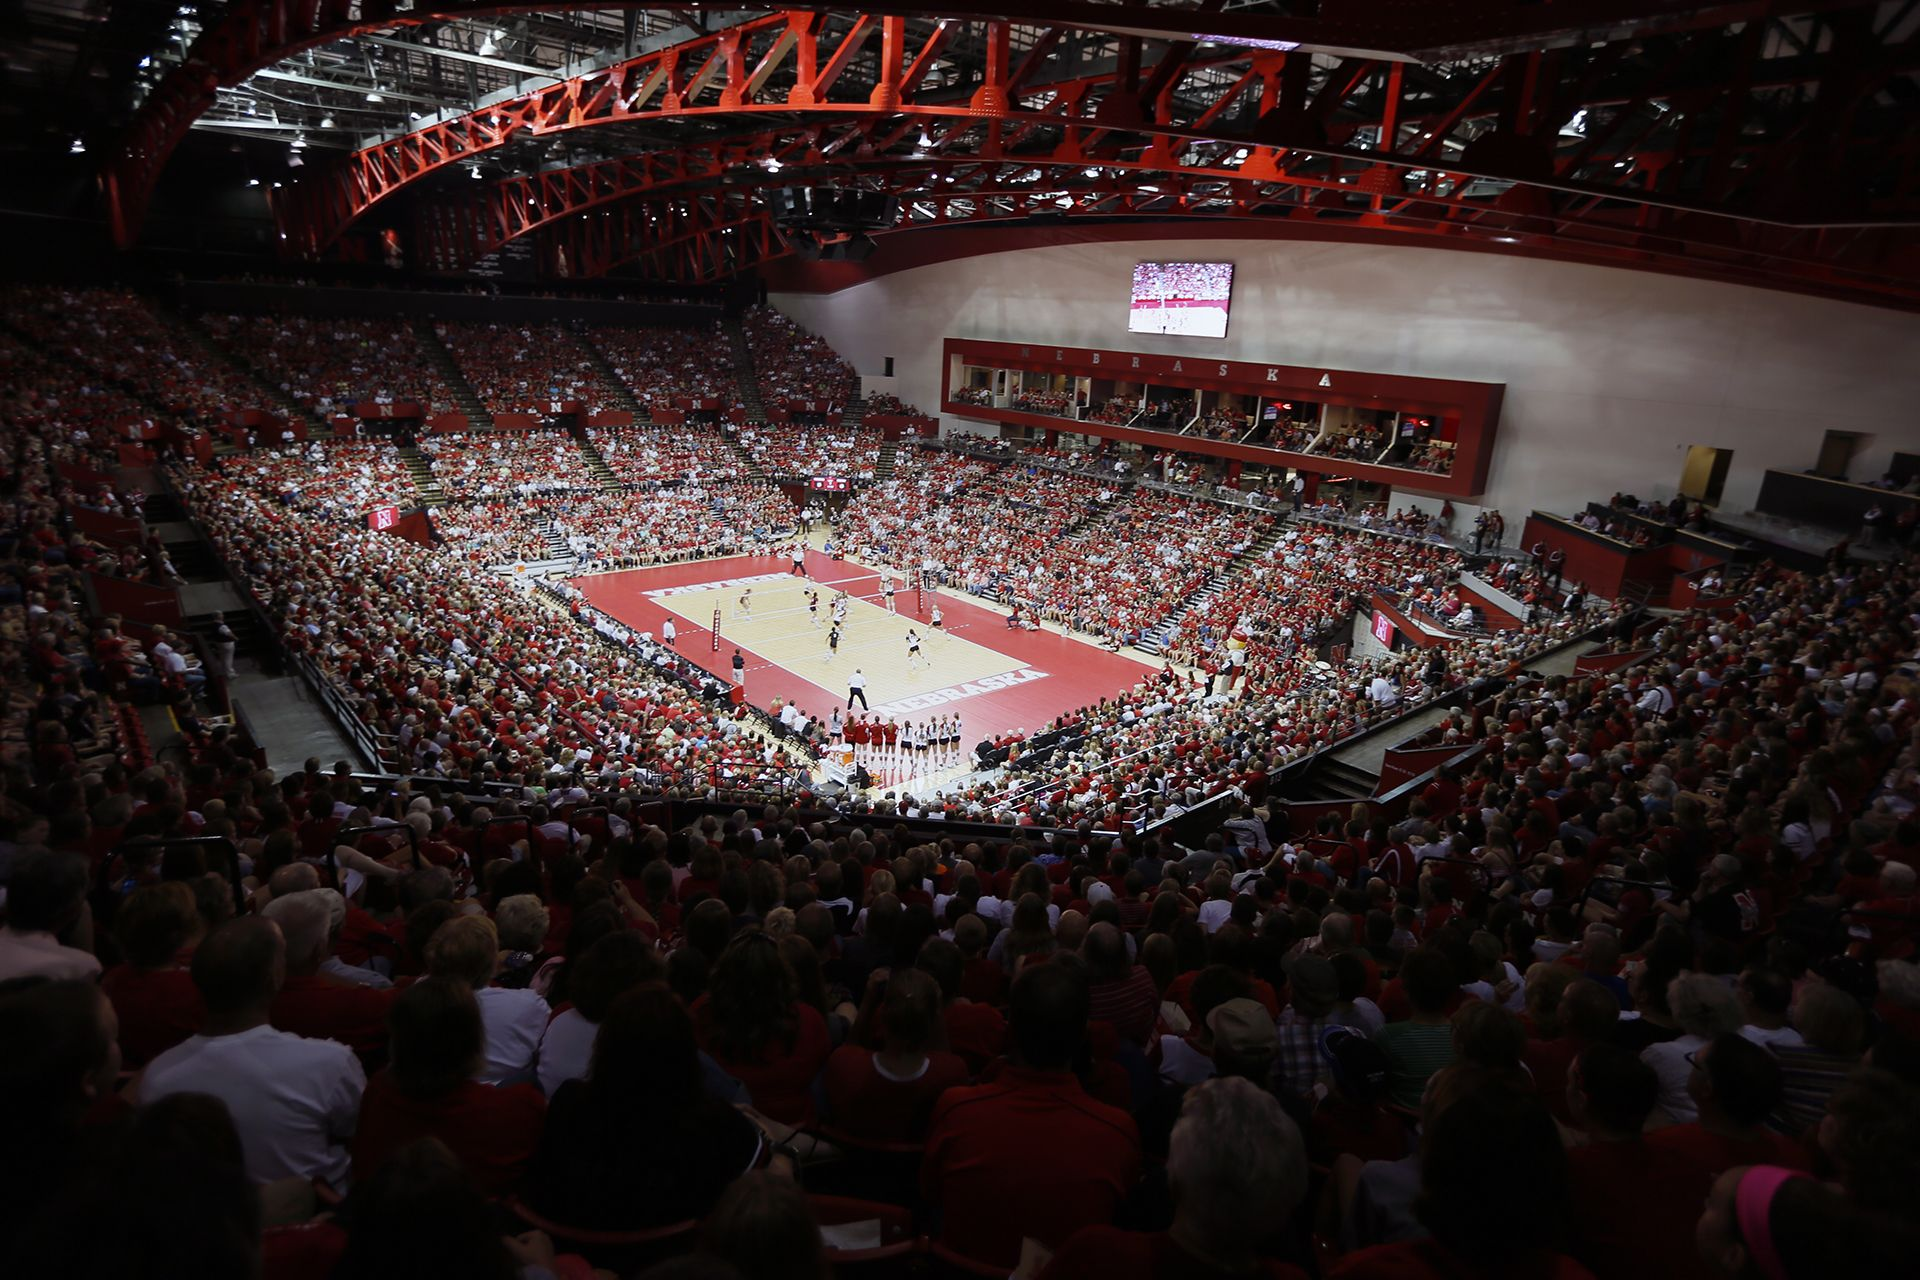 Fans enjoying a volleyball game held at the Bob Devaney Sports Center